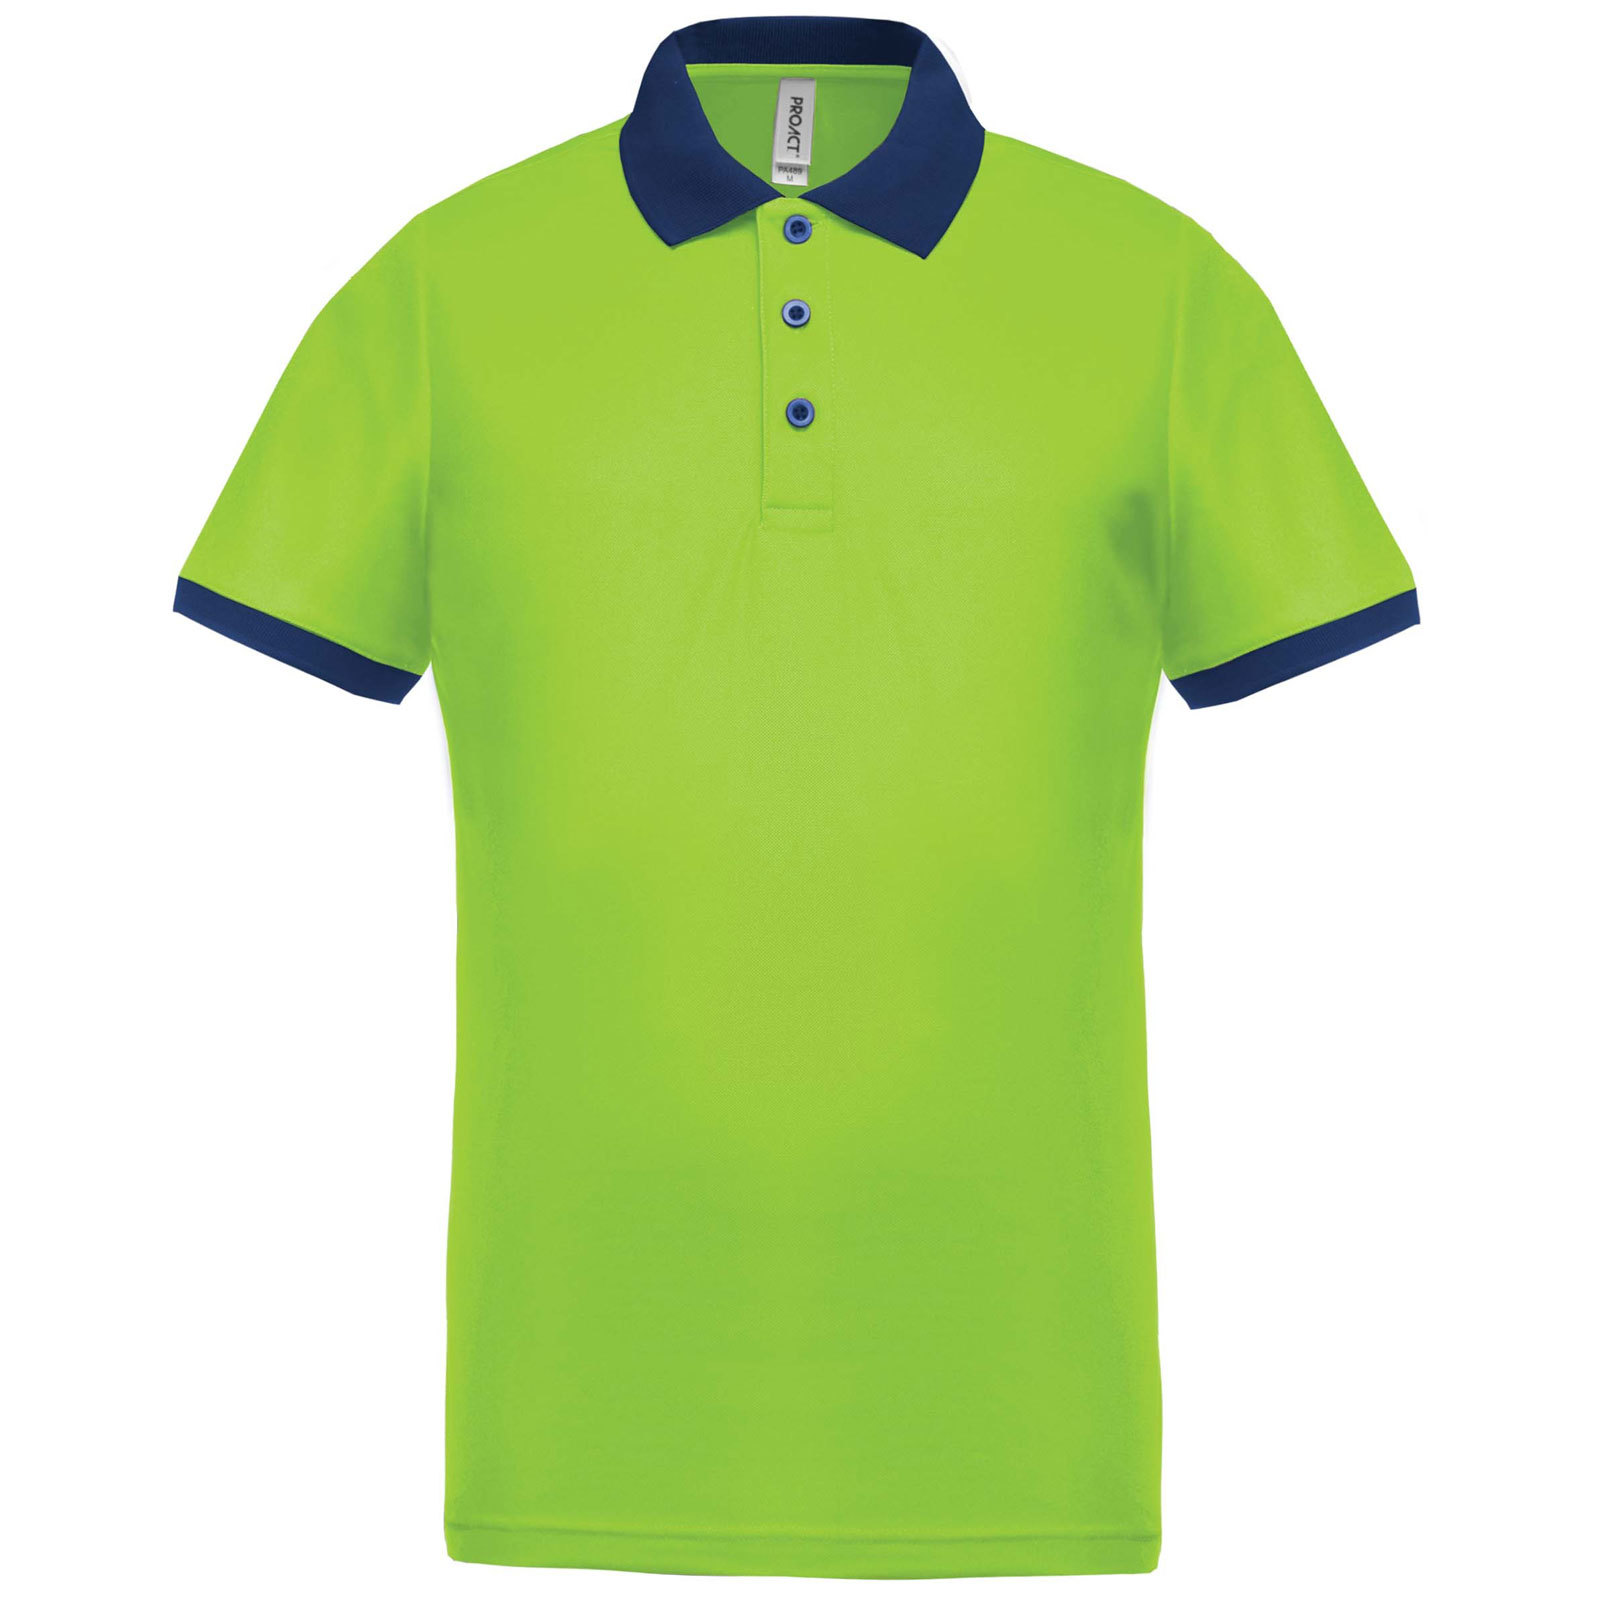 Xlarge ps pa489 lime navy